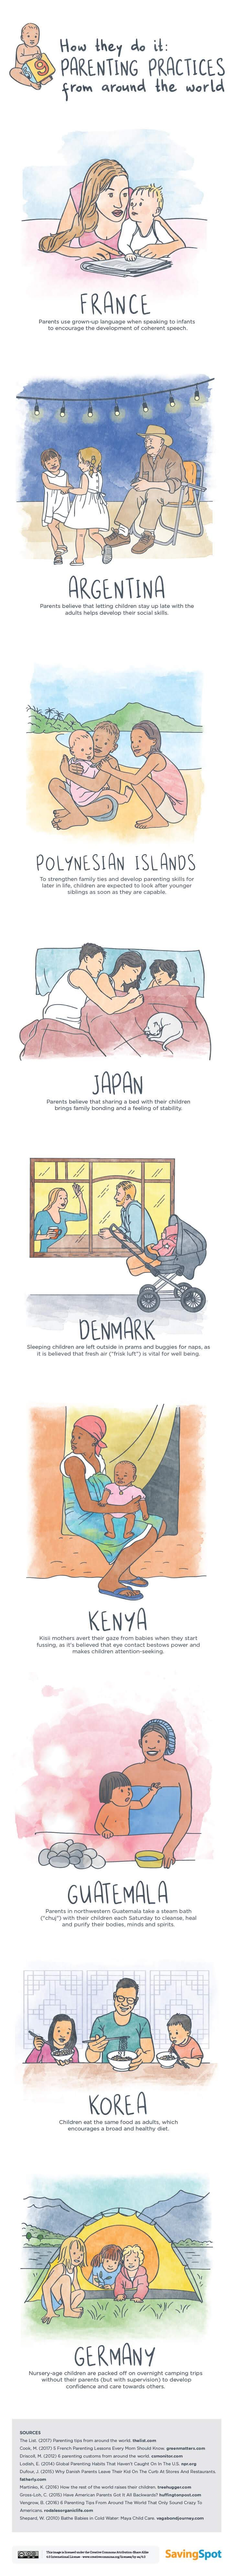 9 Parenting Practices from Around the World